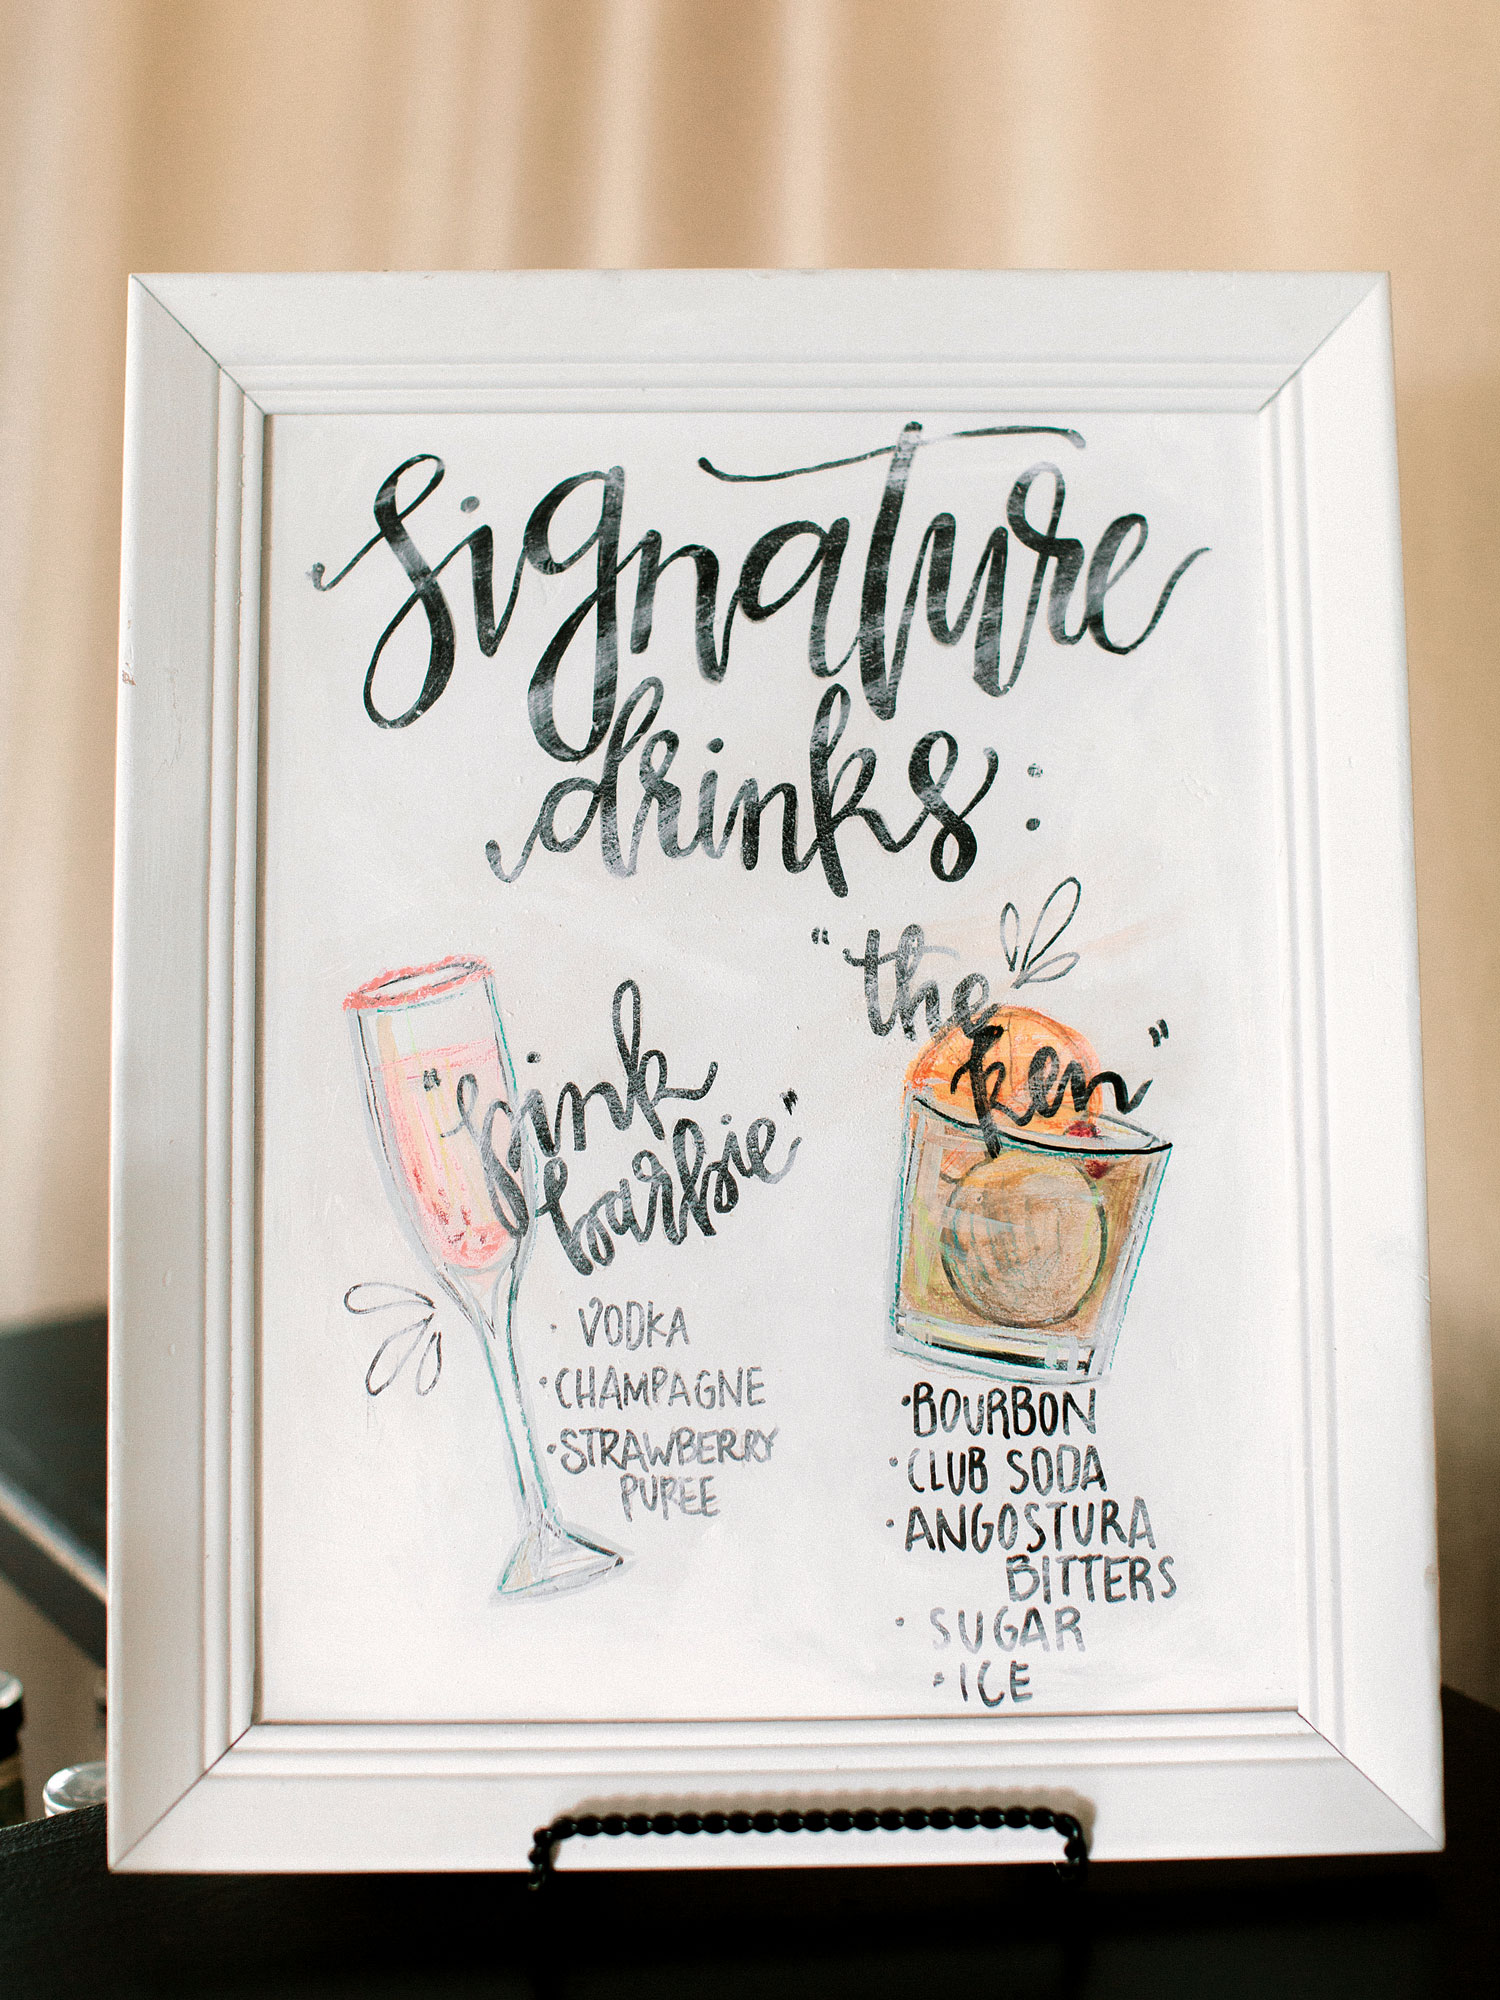 Signature drink menu with cute drawings and calligraphy